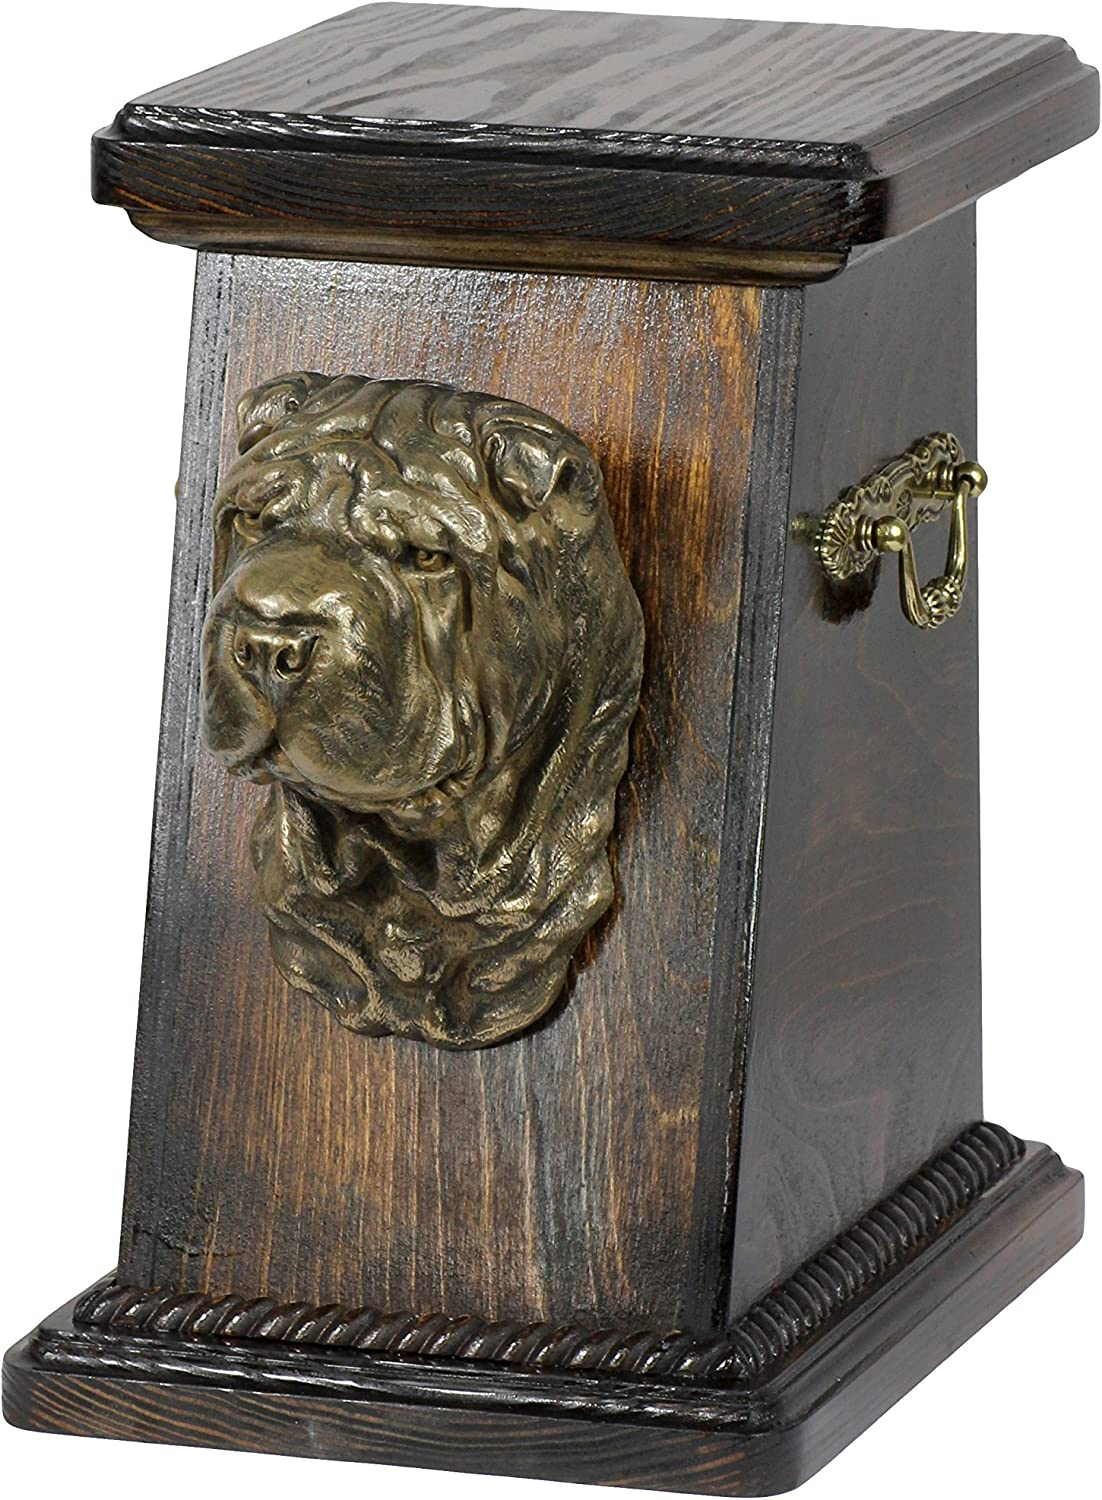 Shar Pei, memorial, urn for dog's ashes, with dog statue, ArtDog